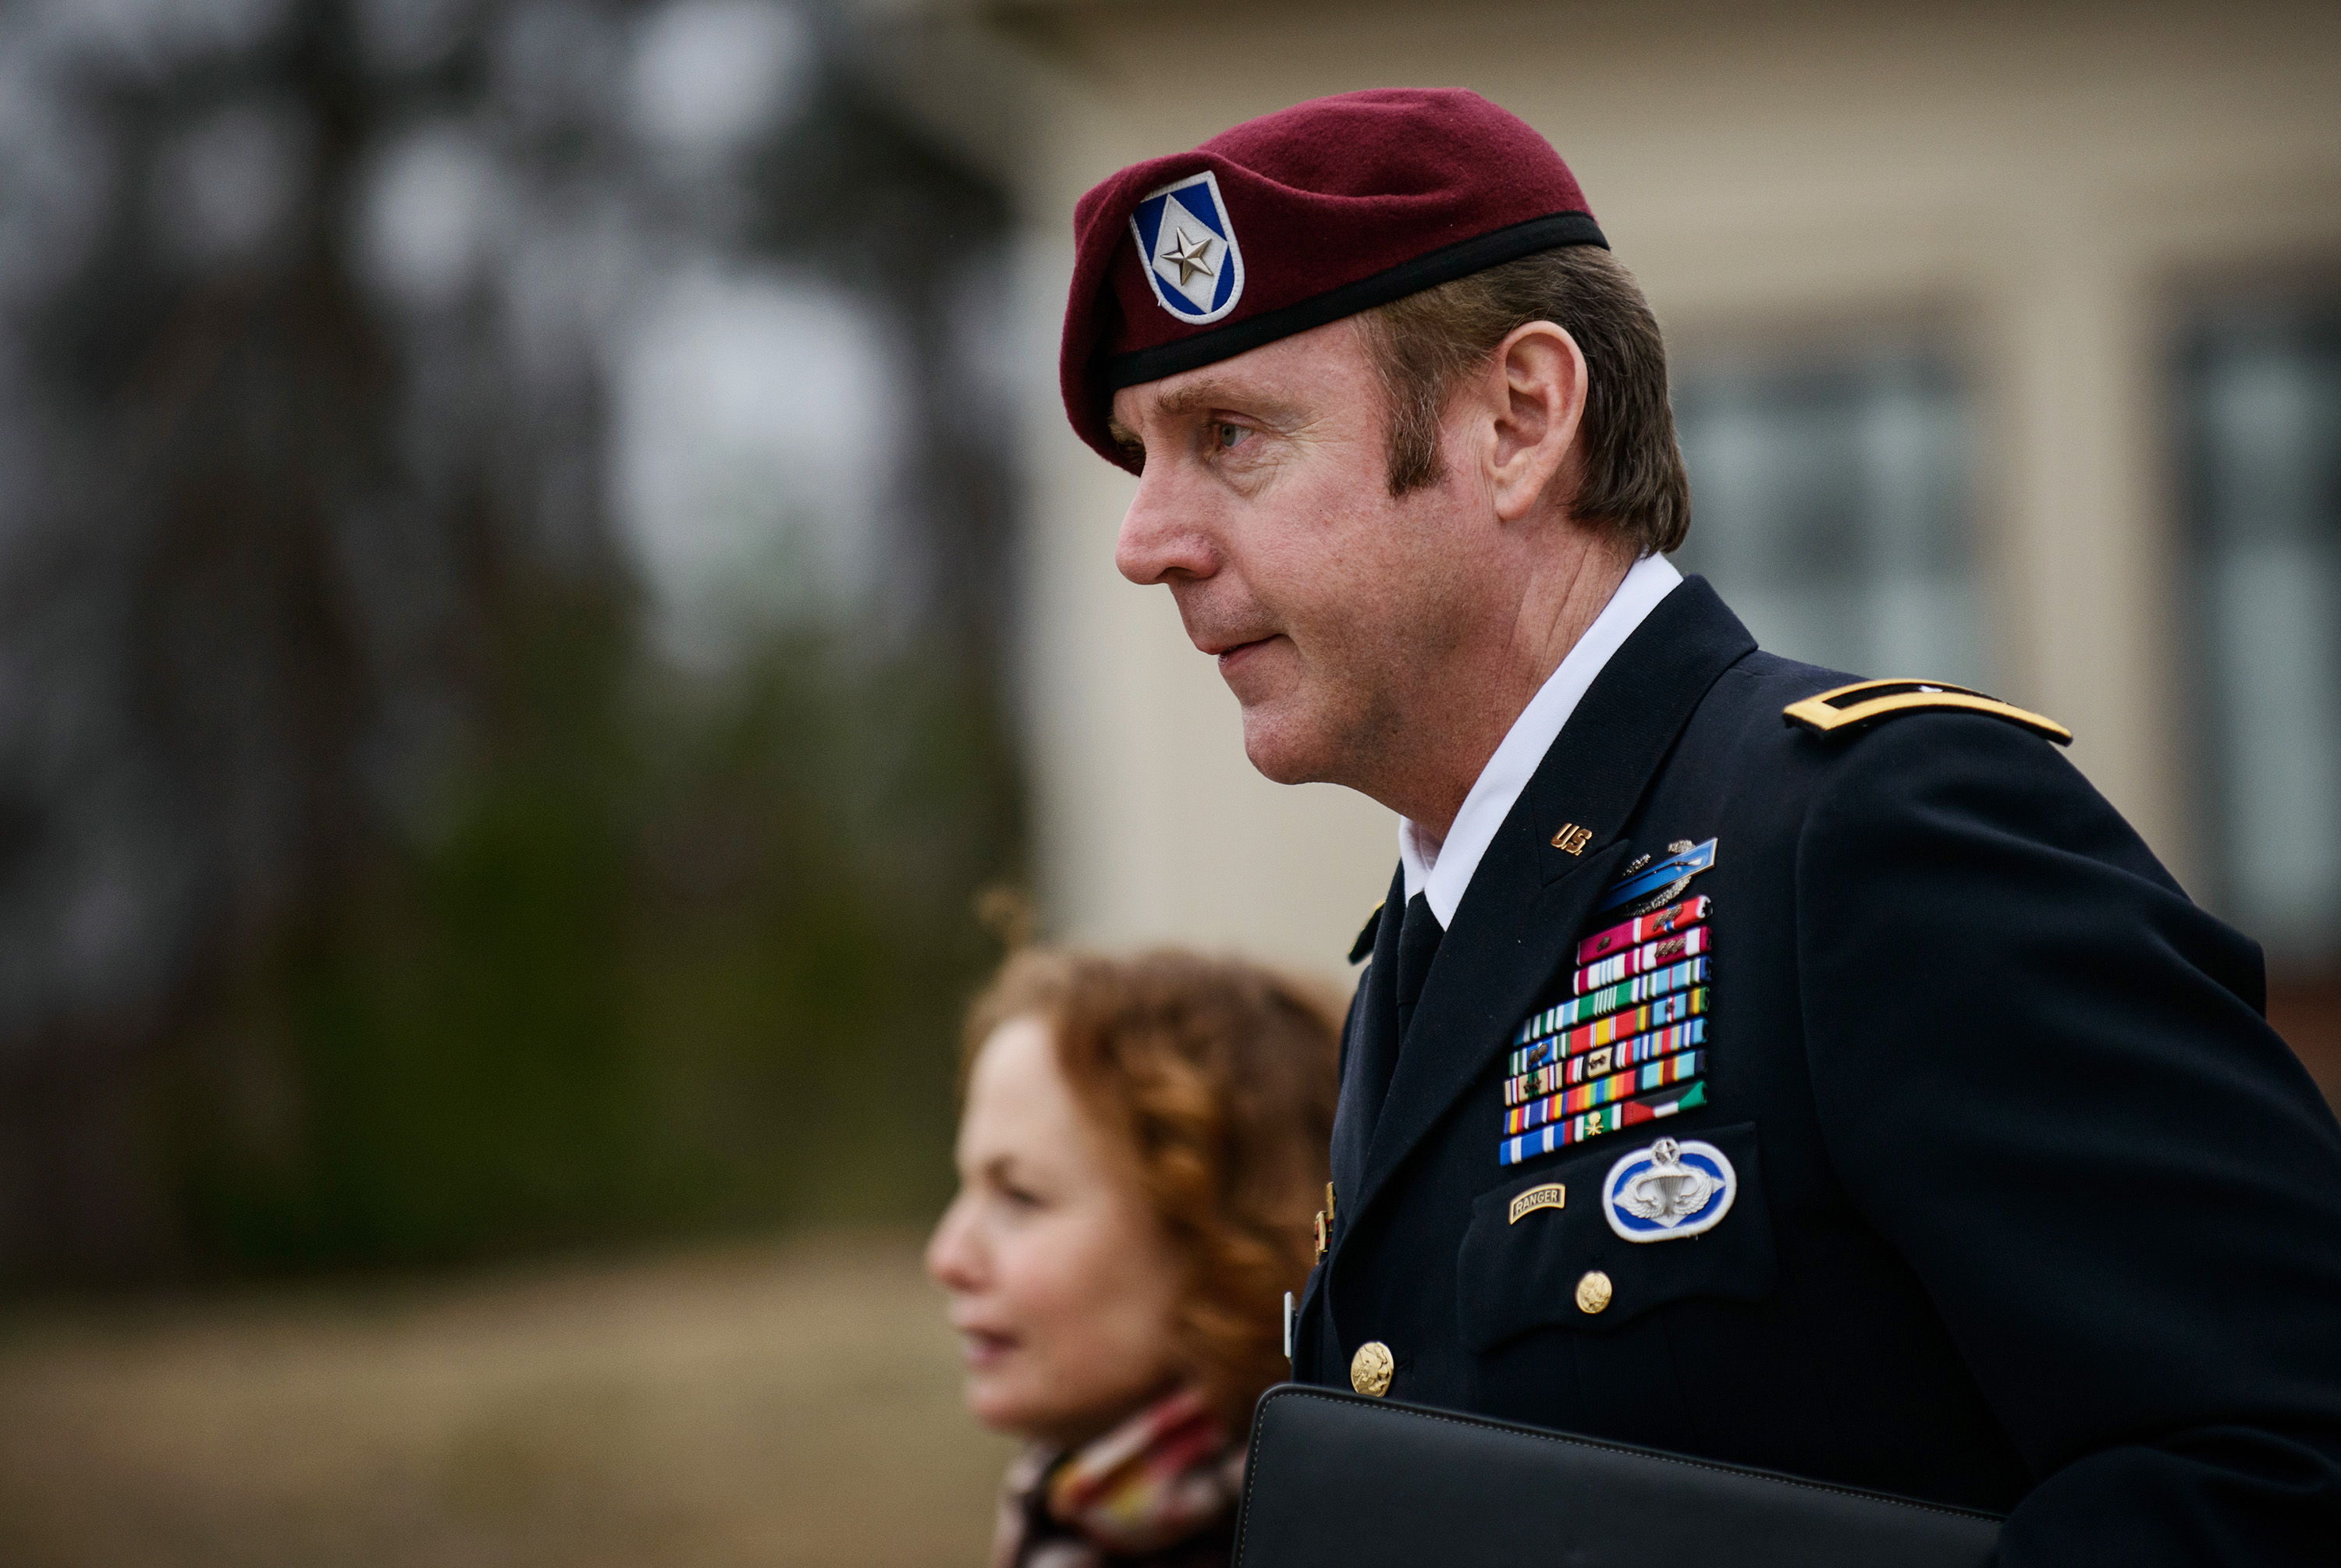 Army General Sex Assault Trial Defense To Try For Plea